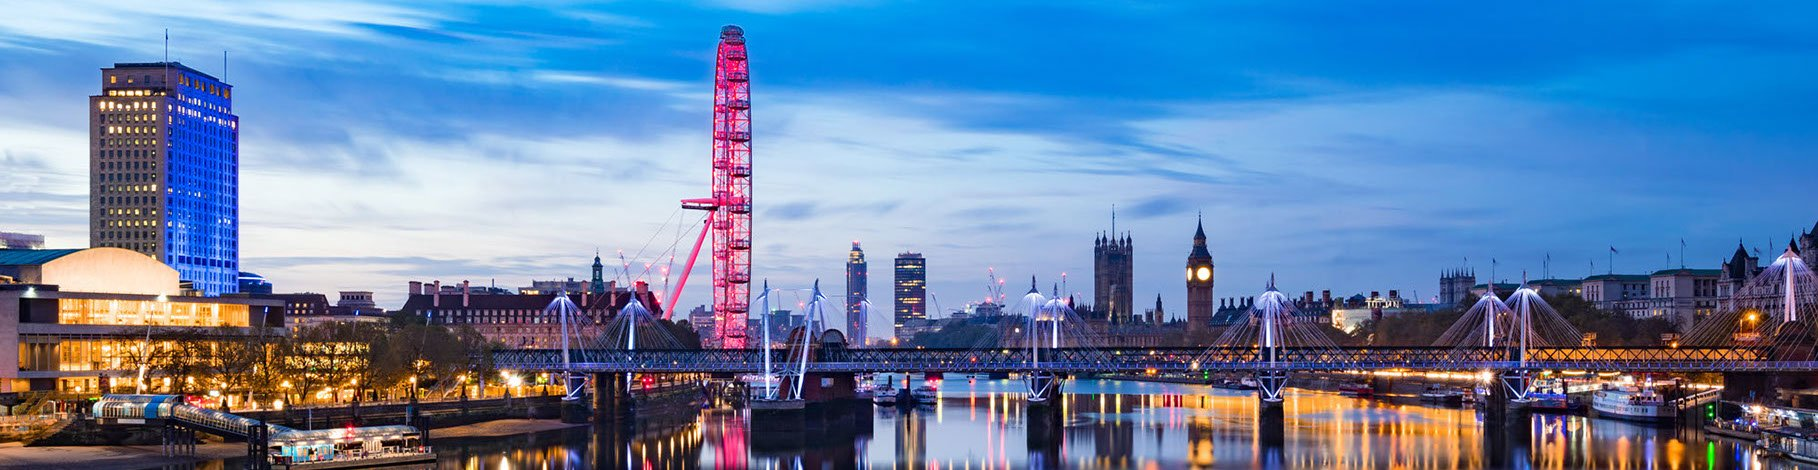 UK Relocations - Westminster London Eye and Parliament